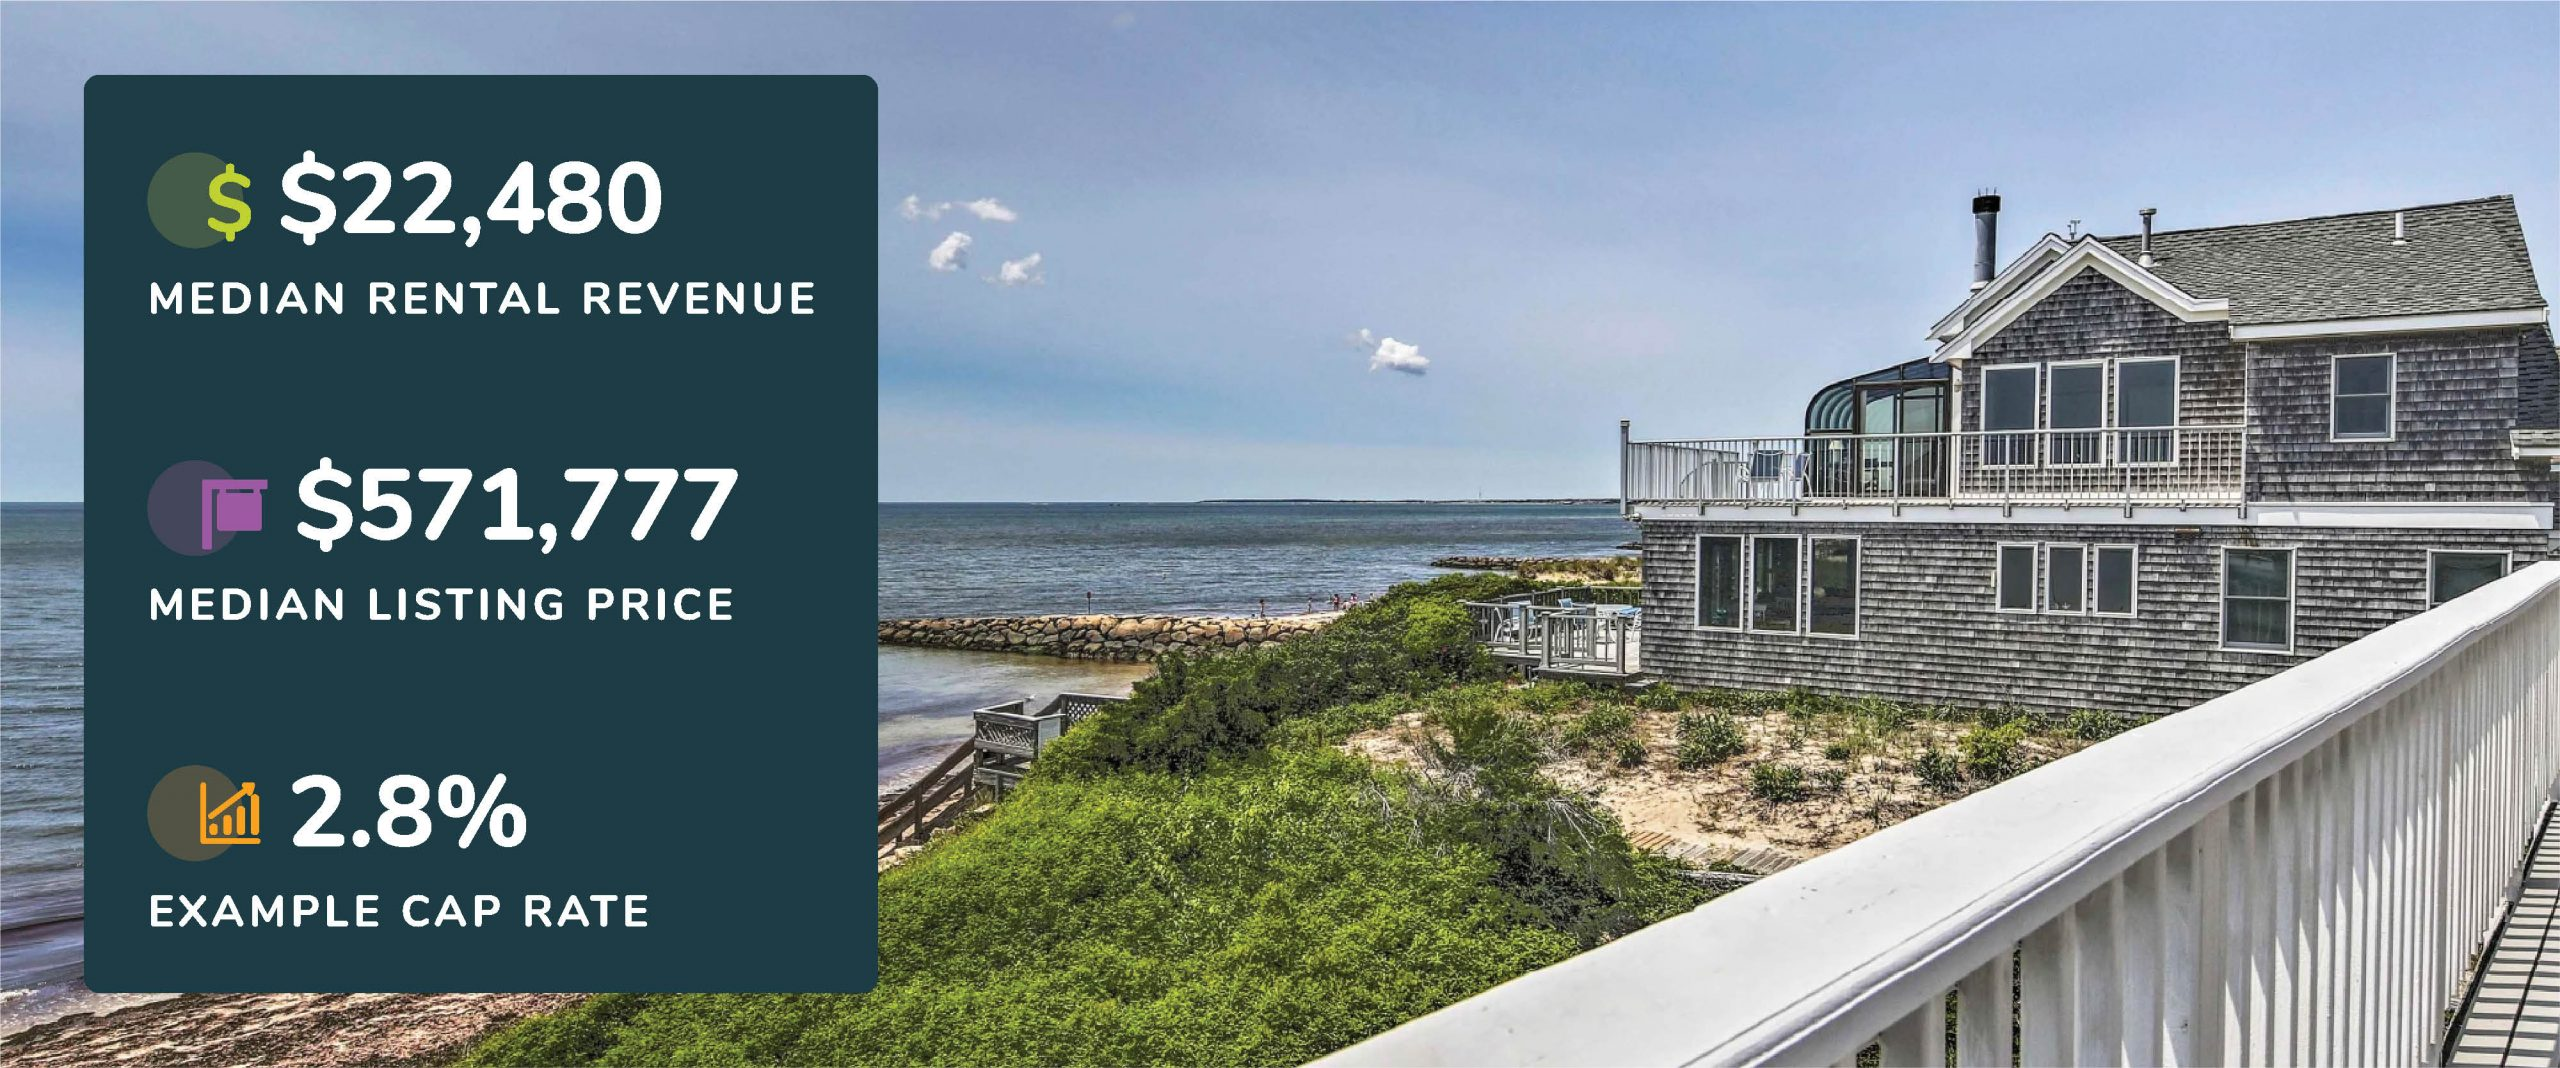 Graphic showing Cape Cod, Massachusetts median rental revenue, listing price, and example cap rate with a picture of a home and ocean views